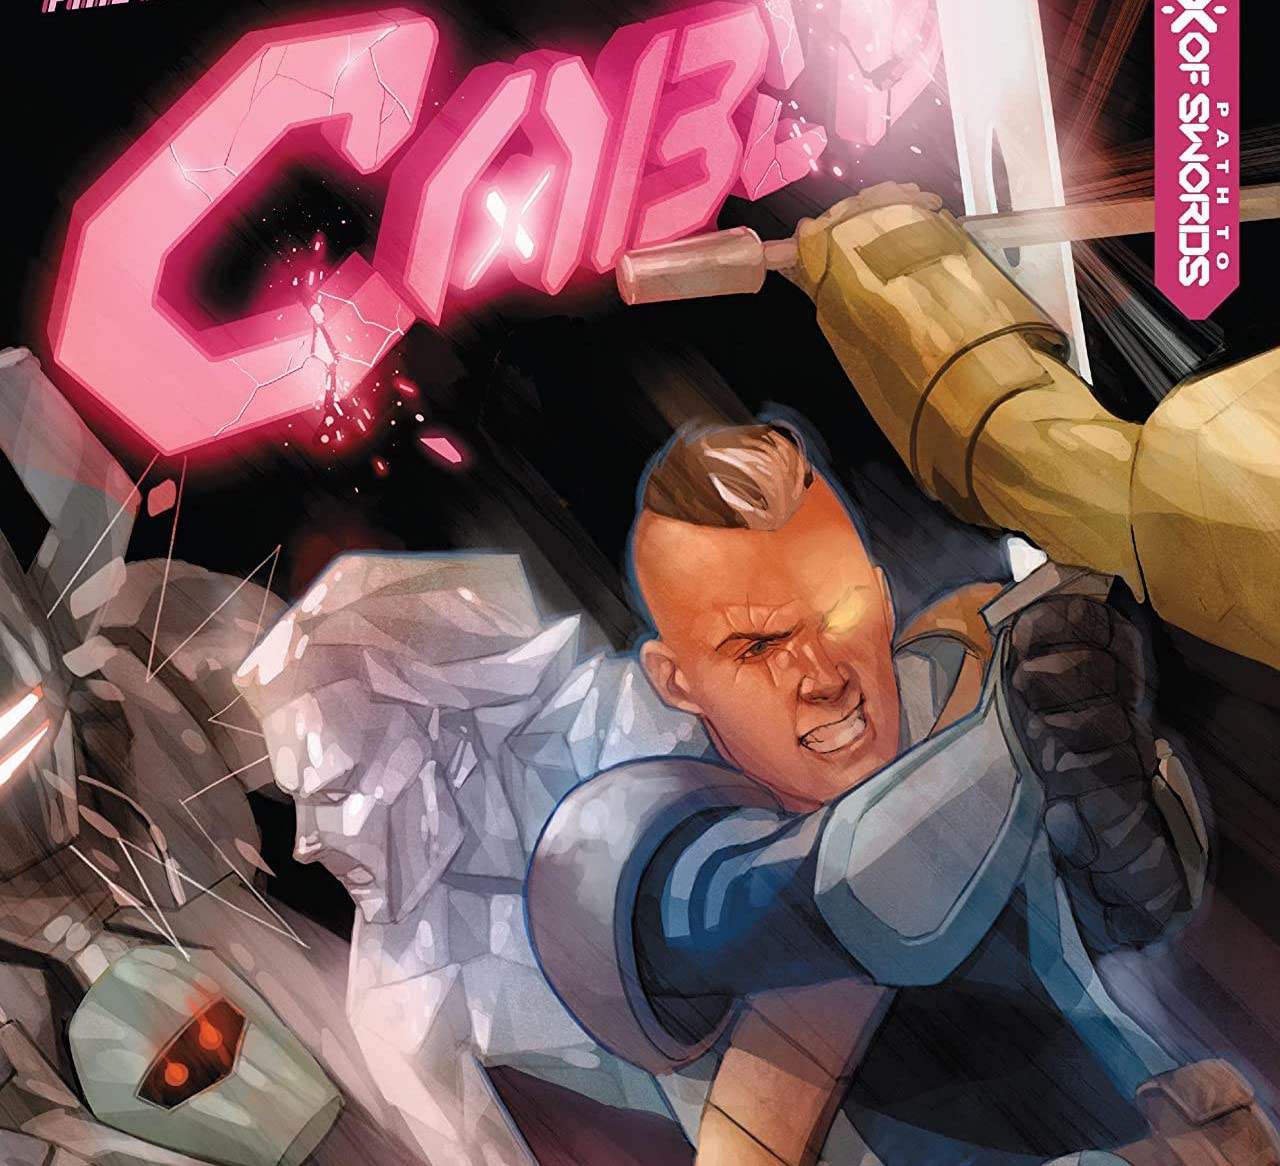 'Cable' #4 review: A lot here to enjoy